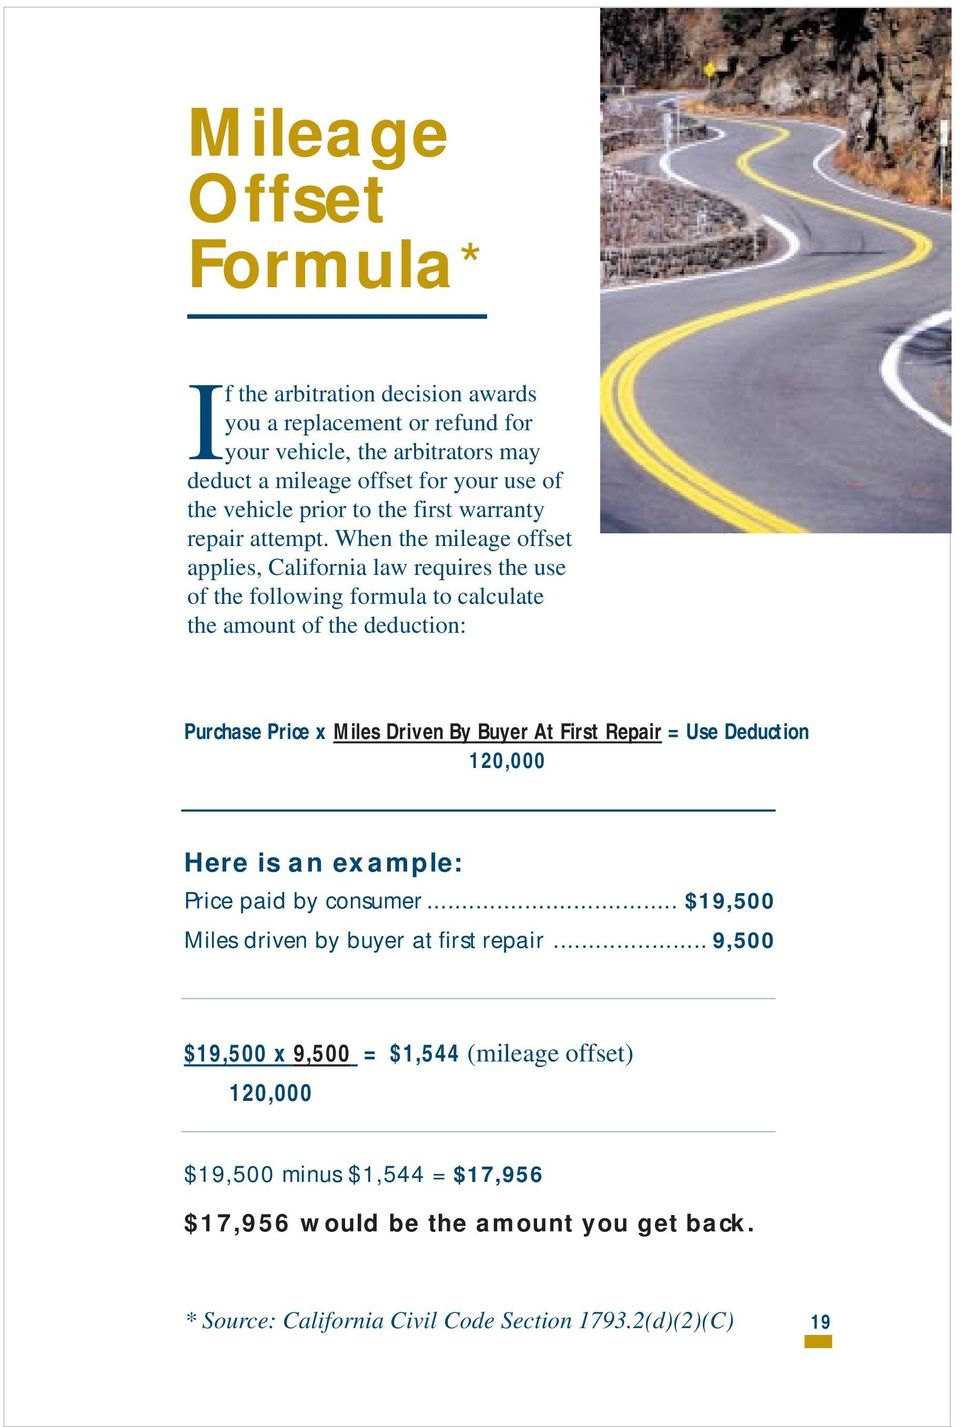 When the mileage offset applies, California law requires the use of the following formula to calculate the amount of the deduction: Purchase Price x Miles Driven By Buyer At